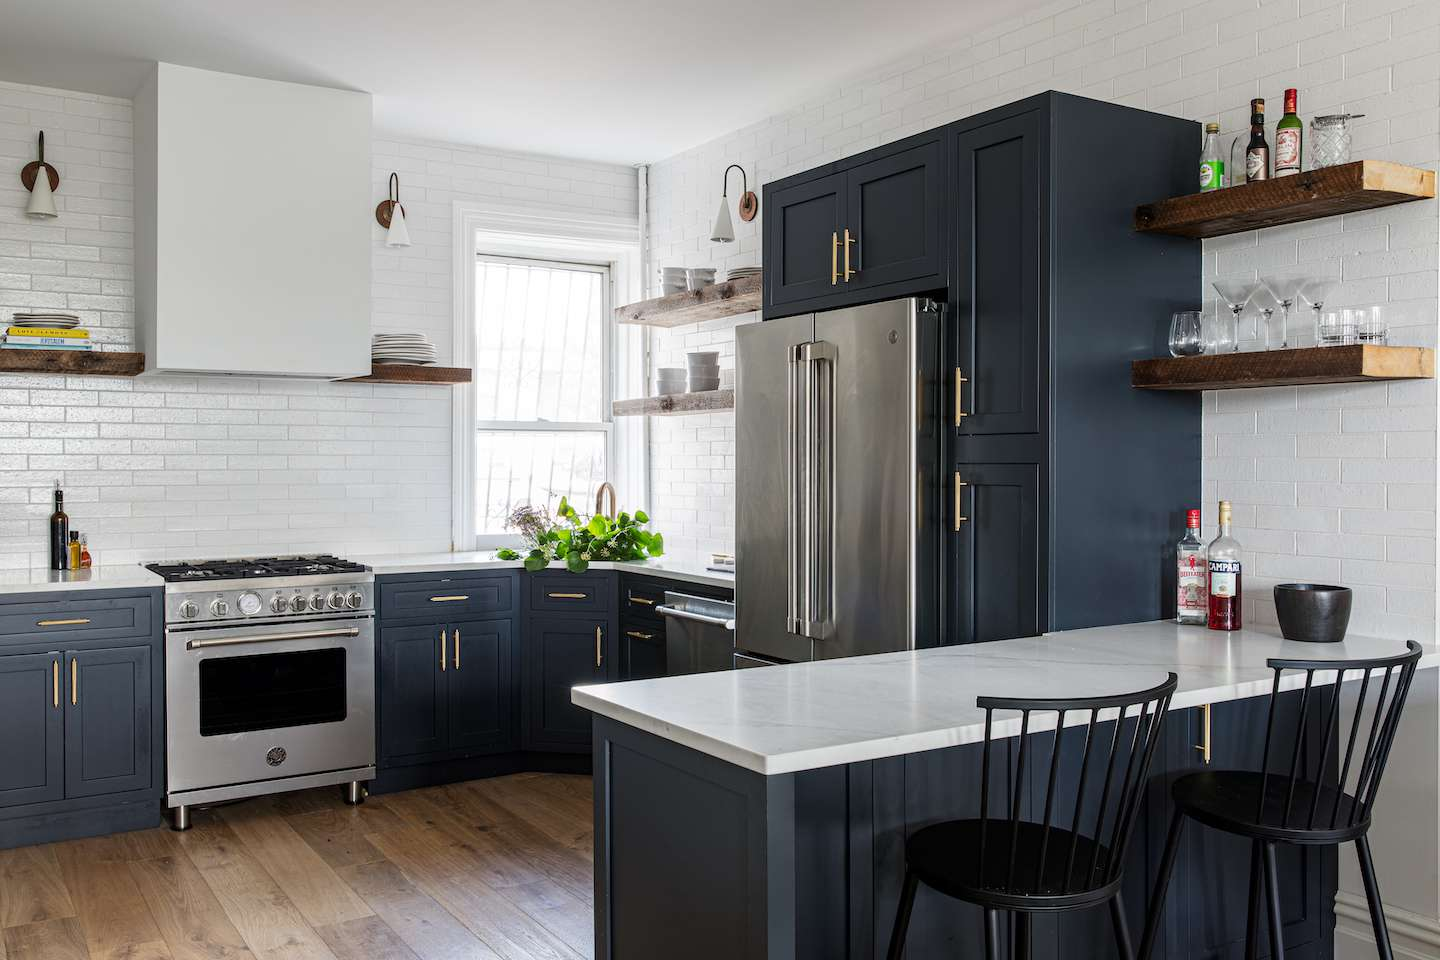 Shot of the navy blue kitchen with eat-in counter.